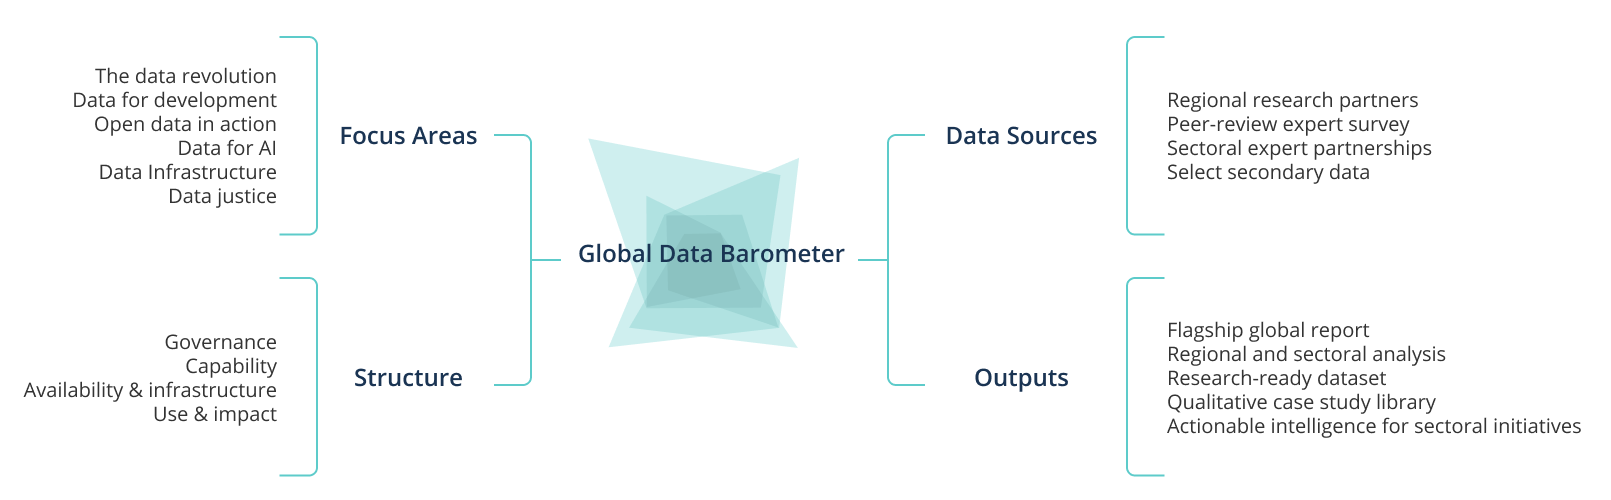 A schema of Global Data Barometer key elements: Focus areas, Data Sources, Structure and Outputs.